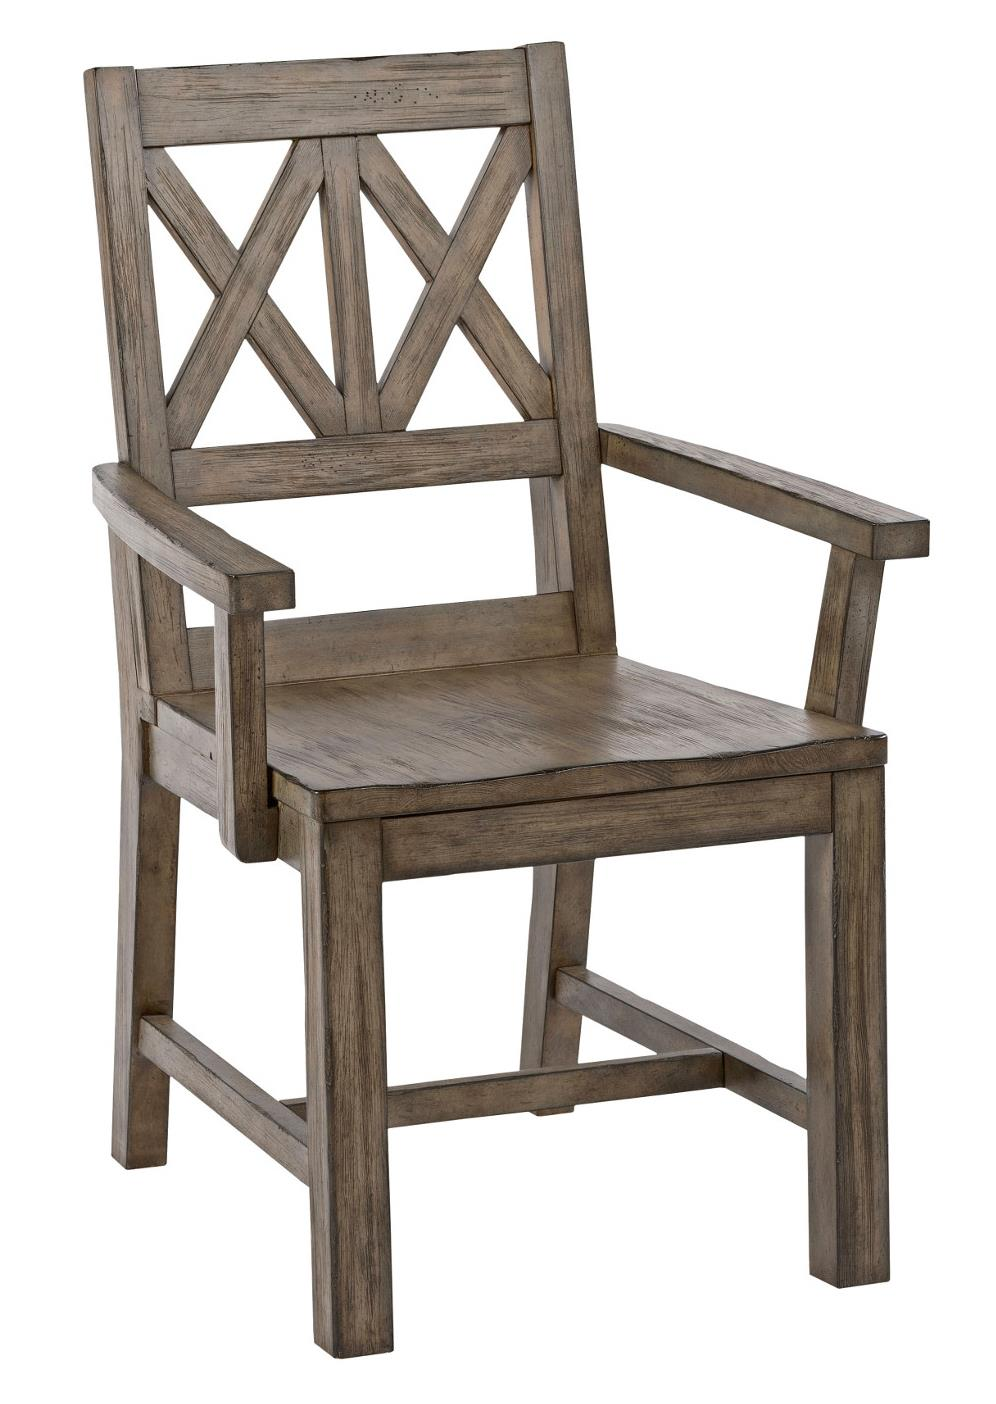 solid wood arm chair with weathered gray finish and x lattice back